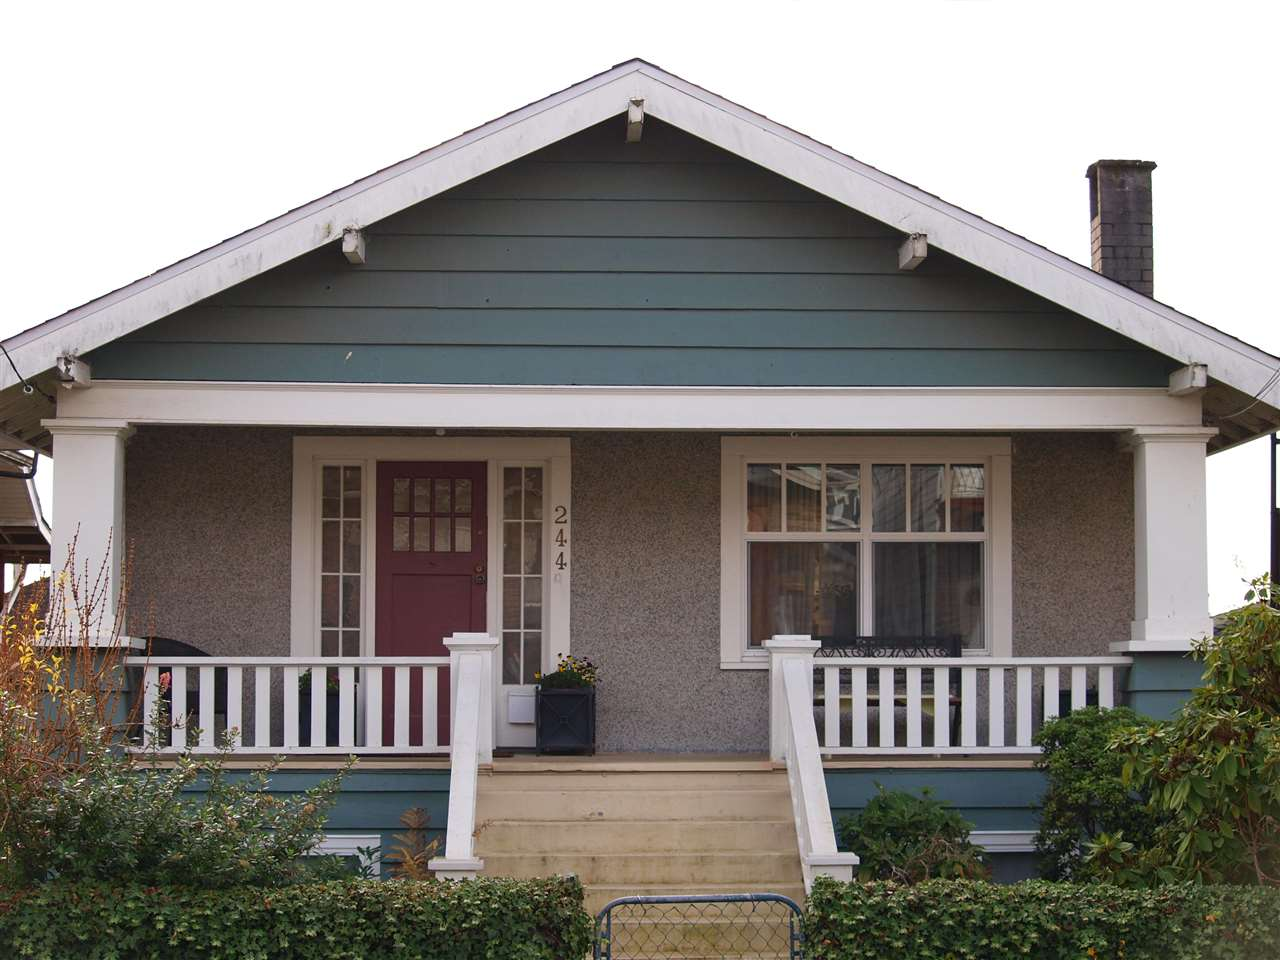 Charming bungalow with big front porch. Think warm summer evenings!